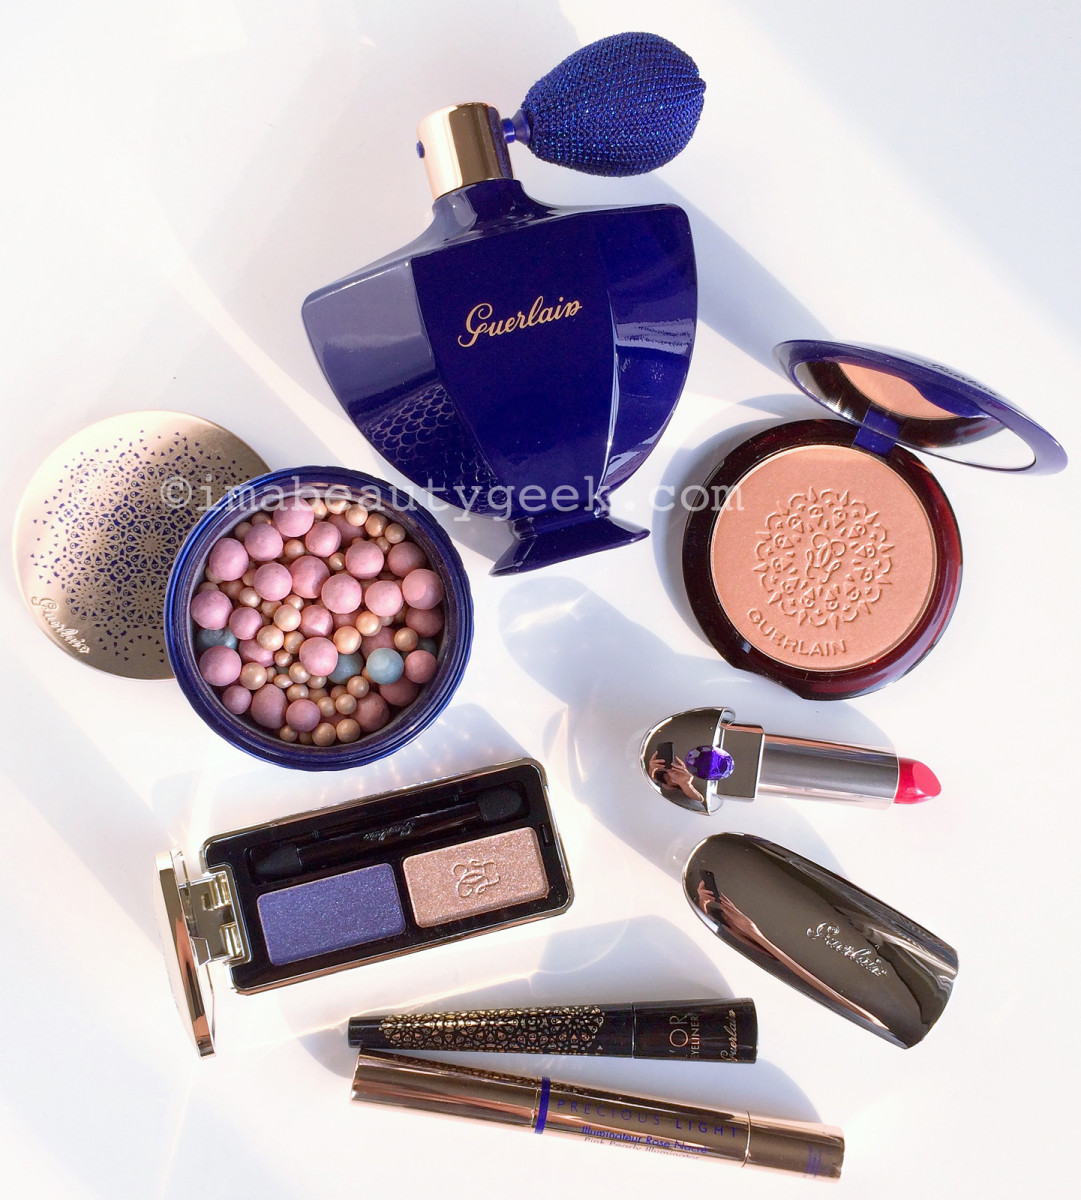 Guerlain holiday 2016: Guerlain Exceptional makeup collection